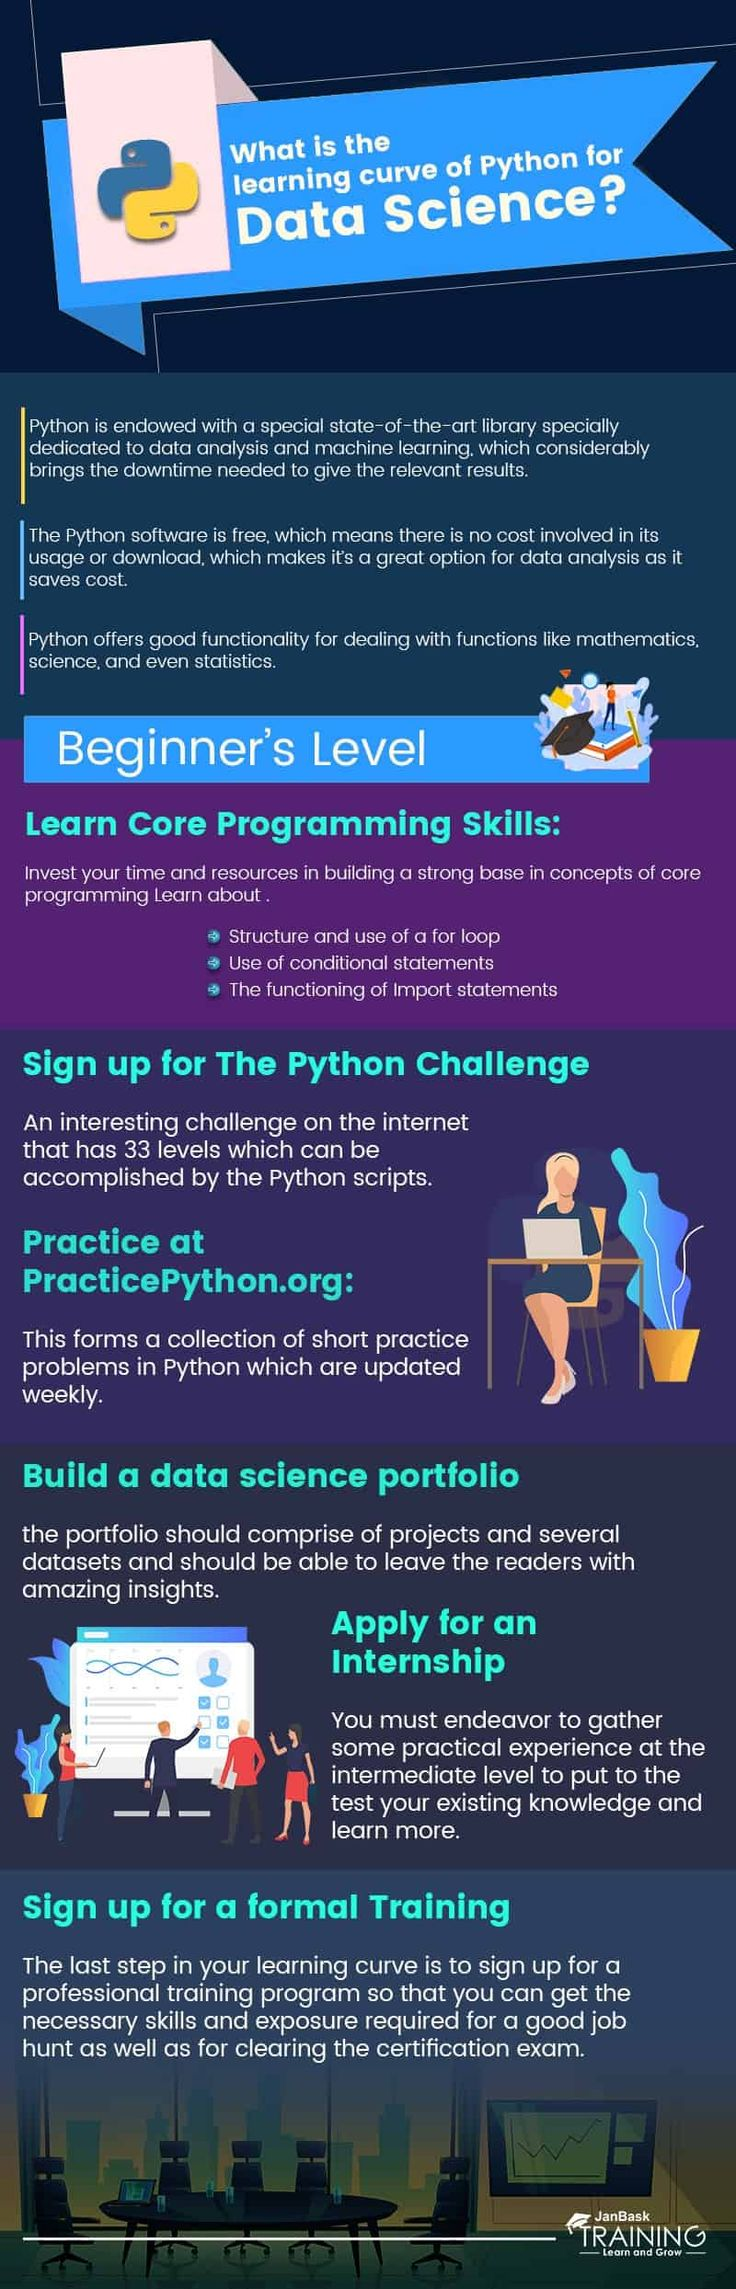 Educational infographic : What is the learning curve of Python for Data Science?